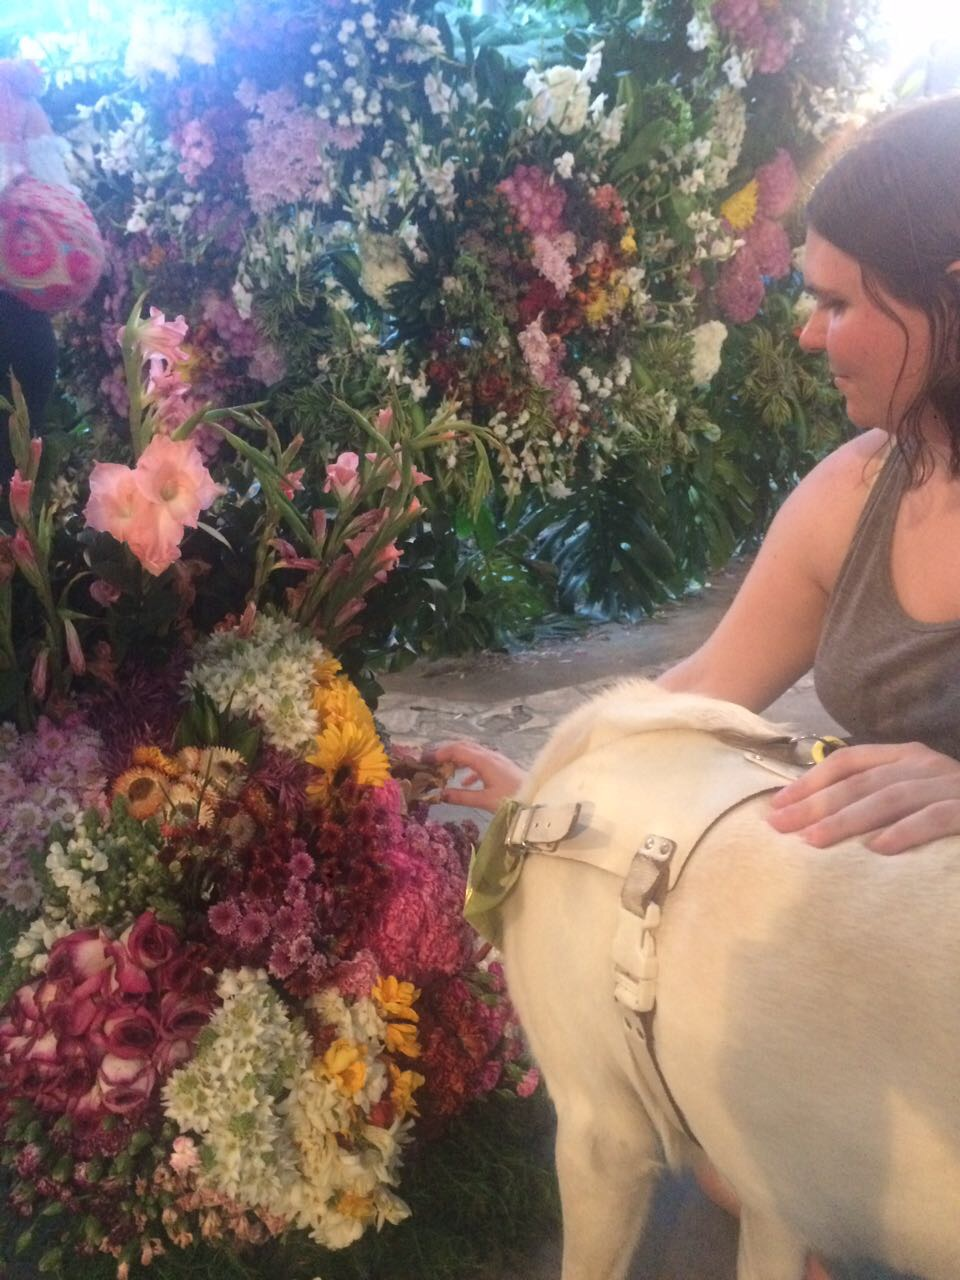 Me touching a silleta with Isla. There is a wall of flowers in the background.